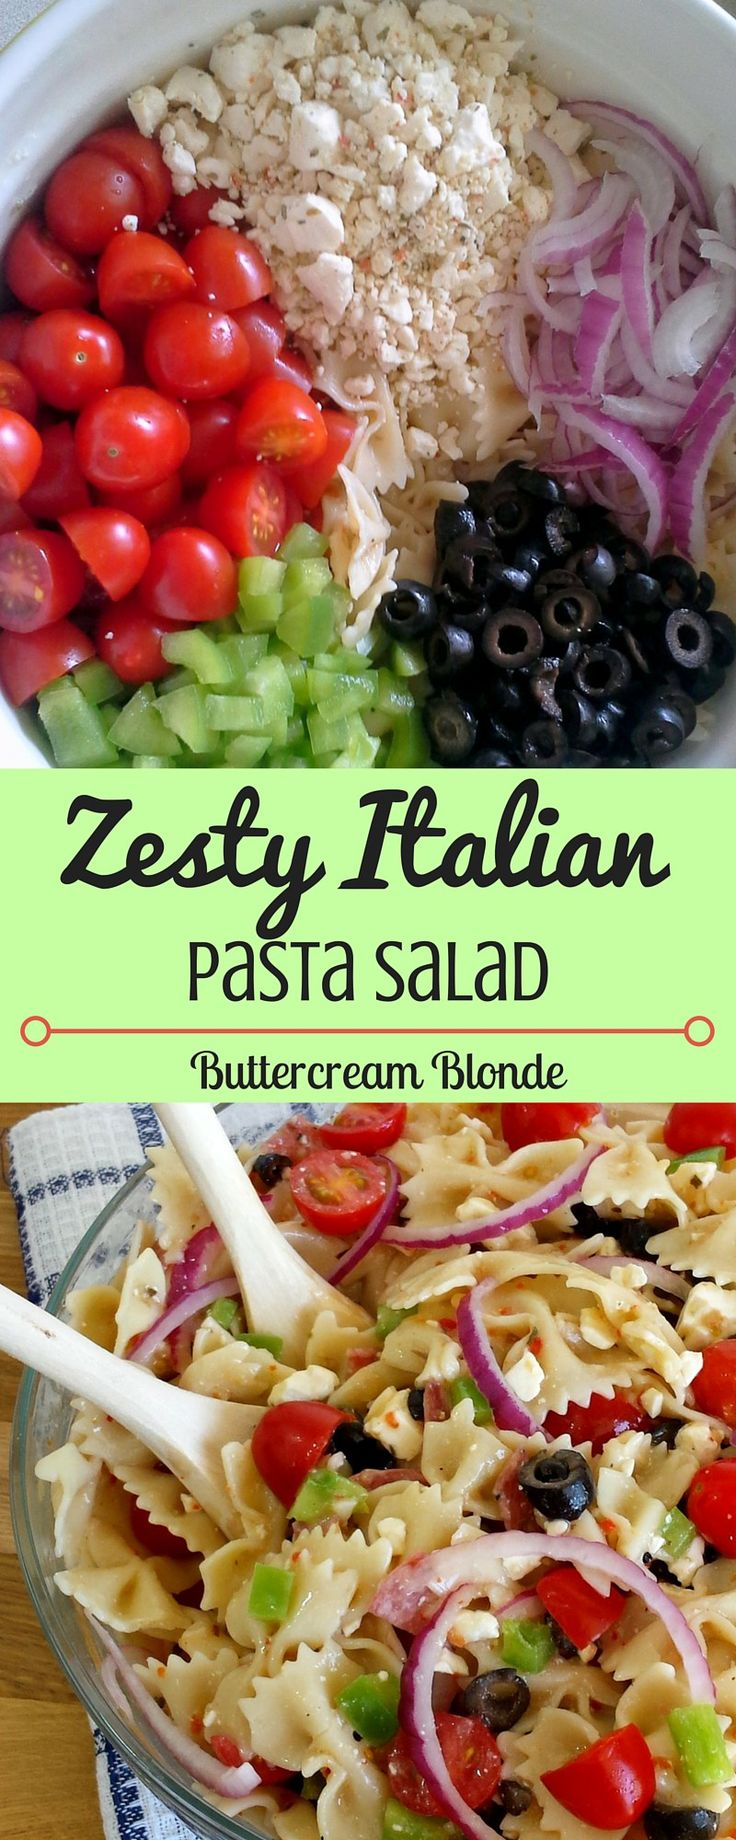 Zesty Italian Pasta Salad. Perfect for summer cook out!